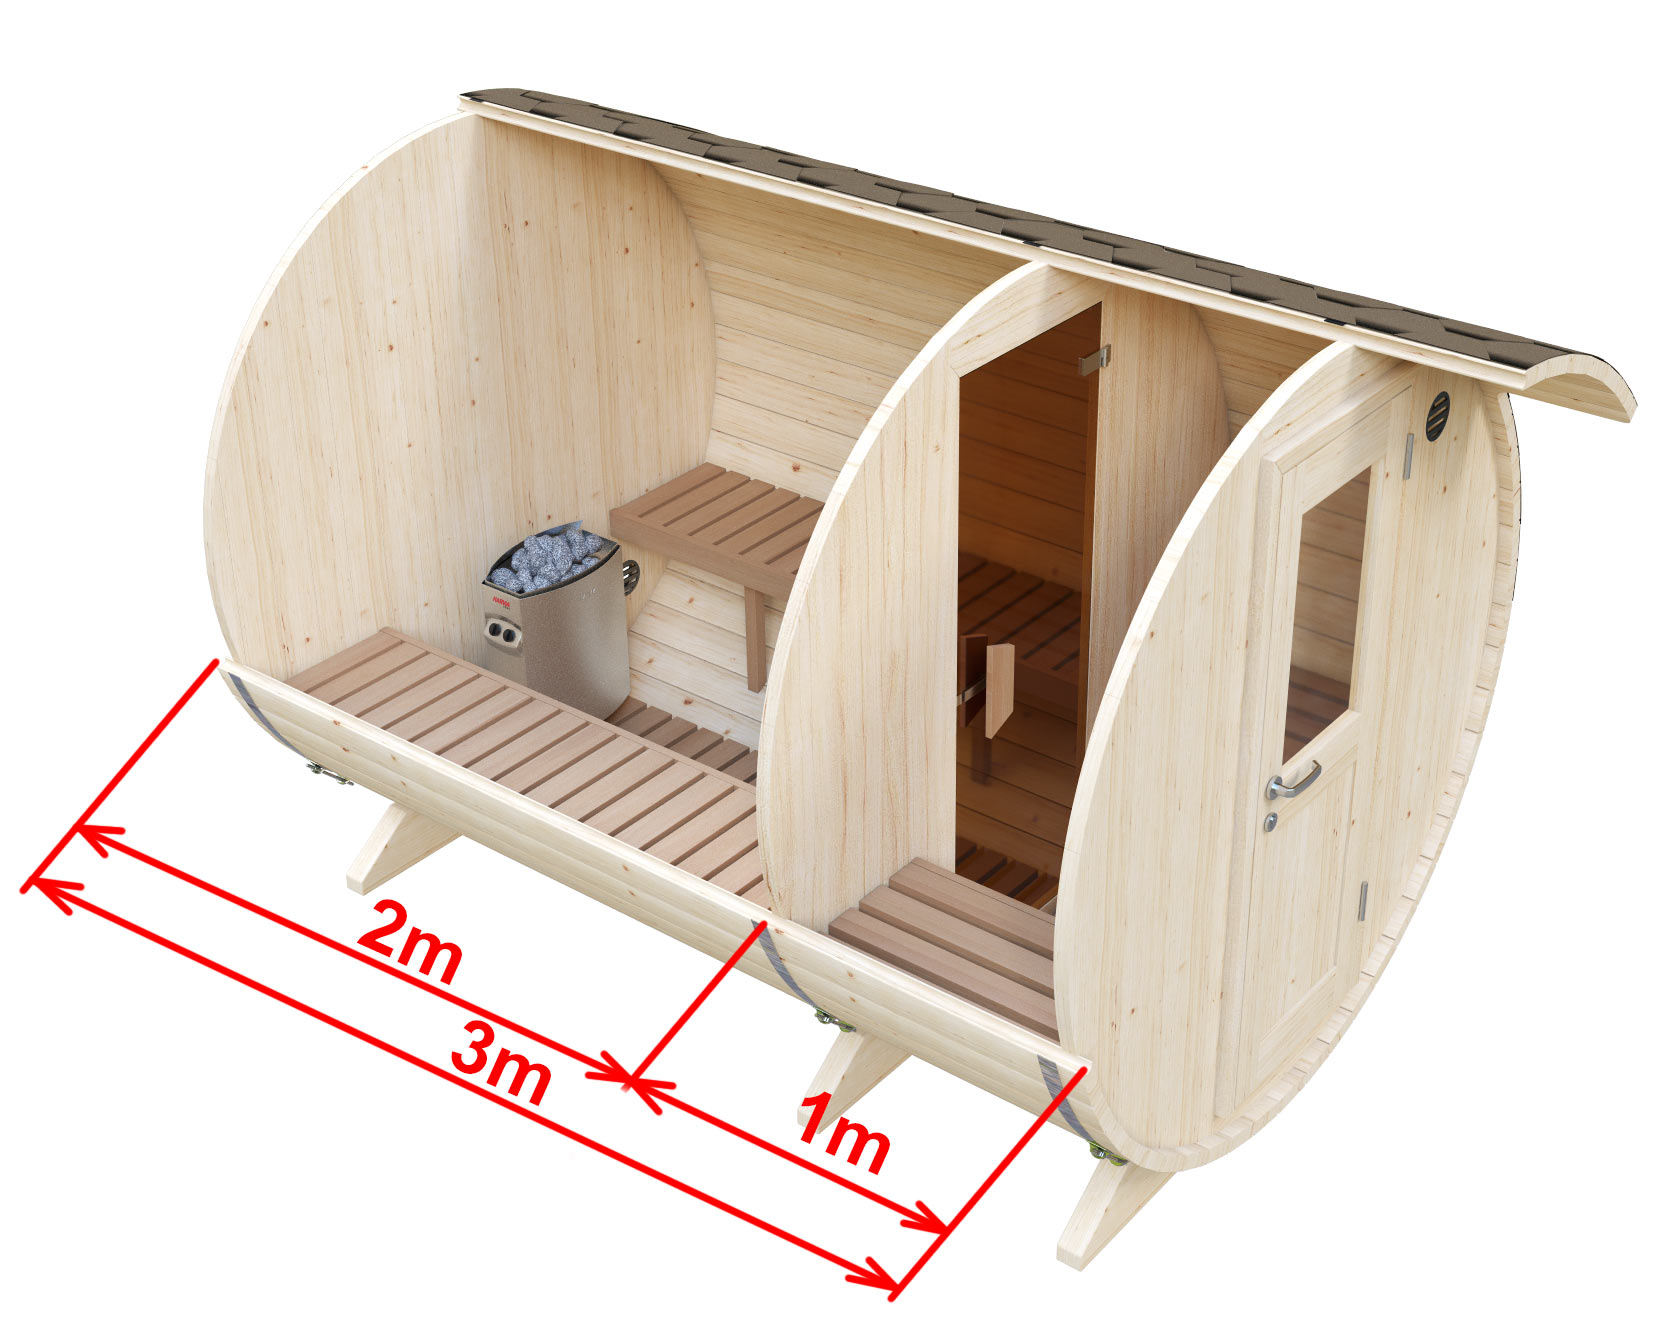 Dimensions sauna with dressing room